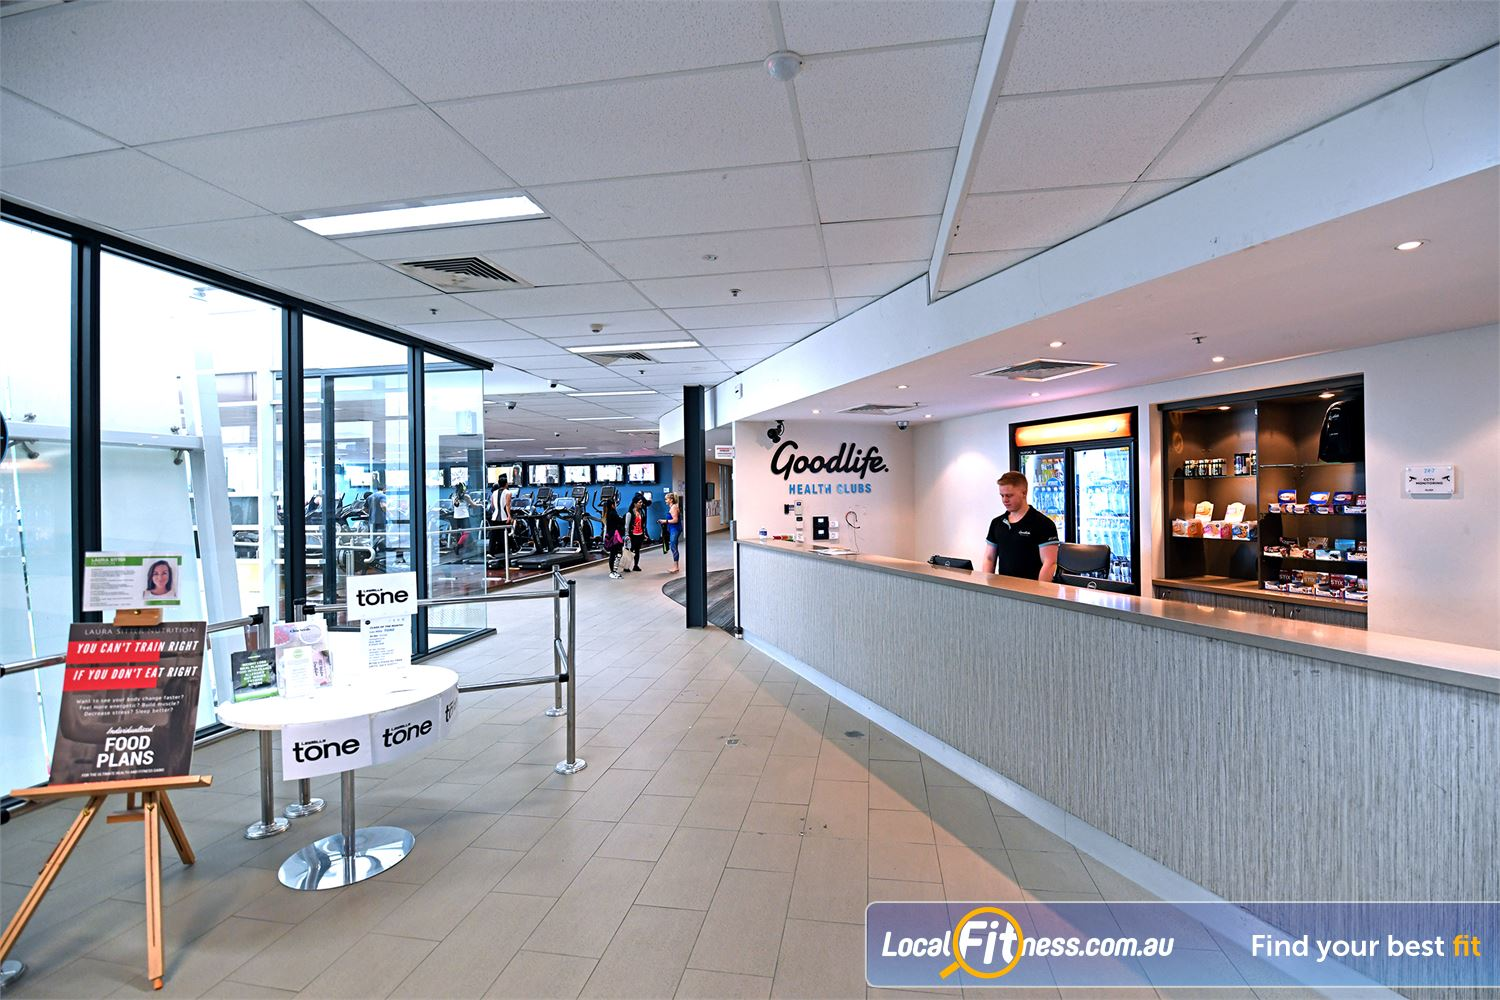 Goodlife Health Clubs Point Cook Our team are ready to help you with all your fitness needs.